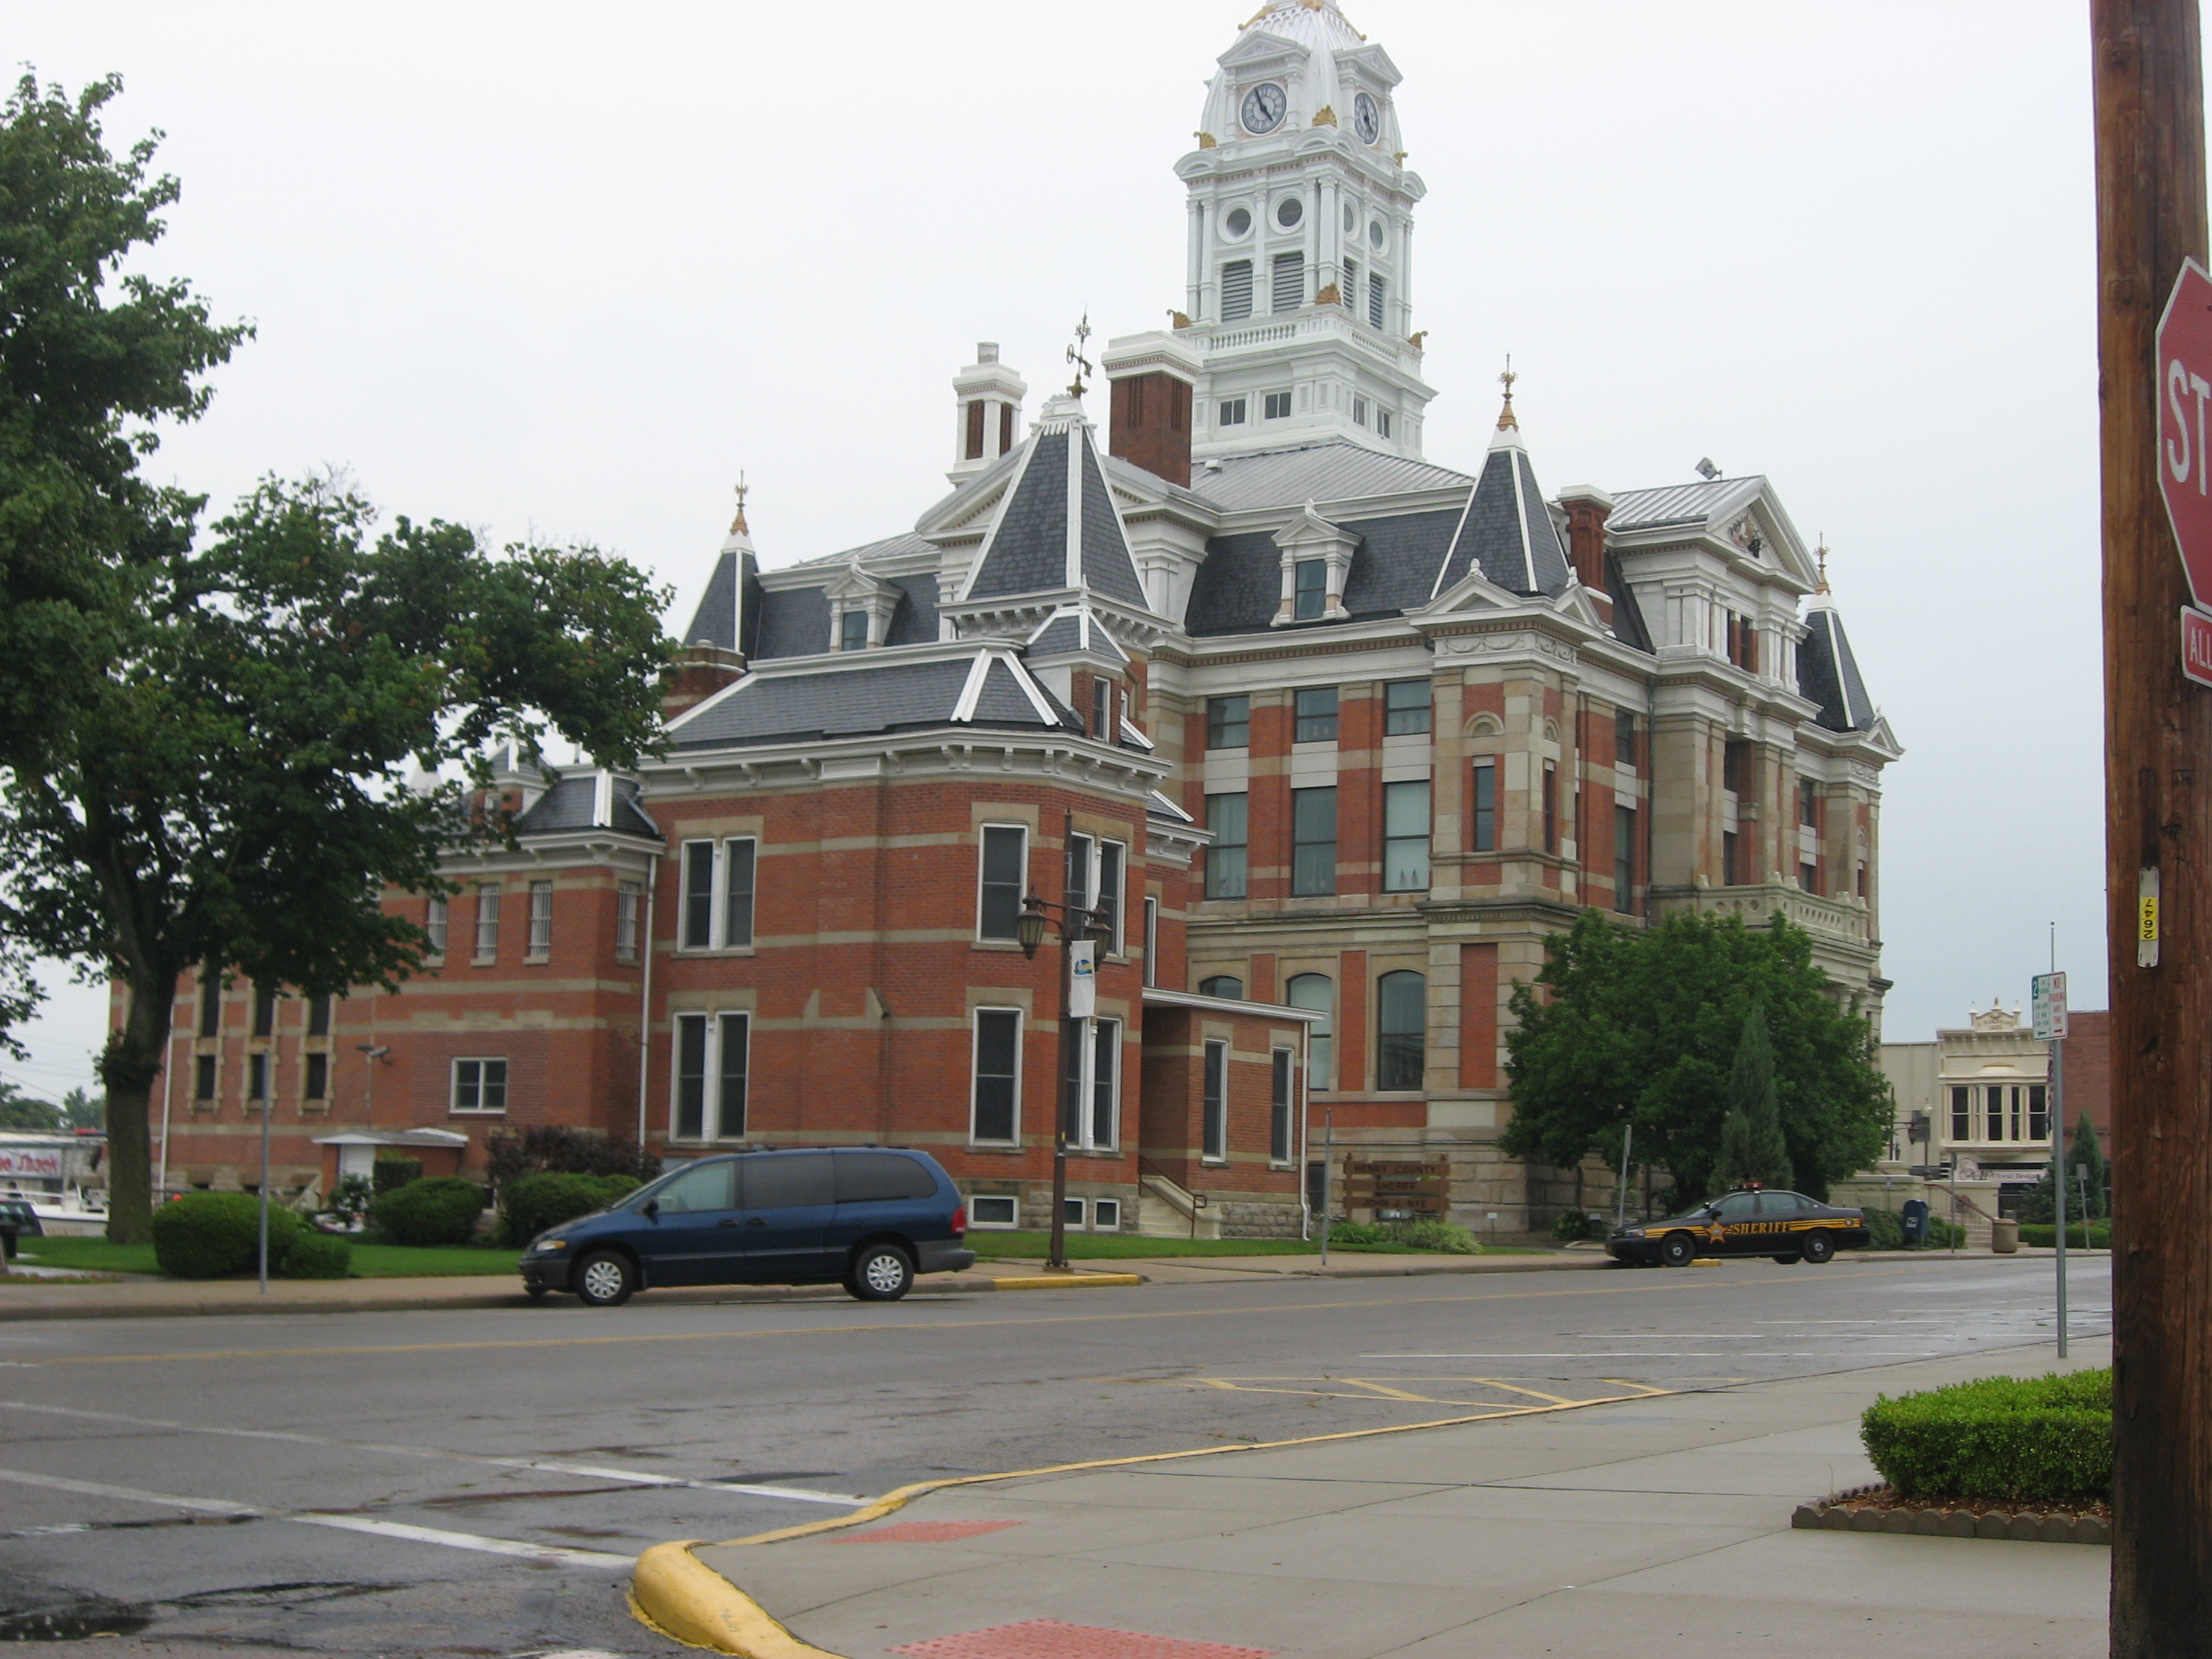 Henry County Sheriff's Residence and Jail - Wikipedia